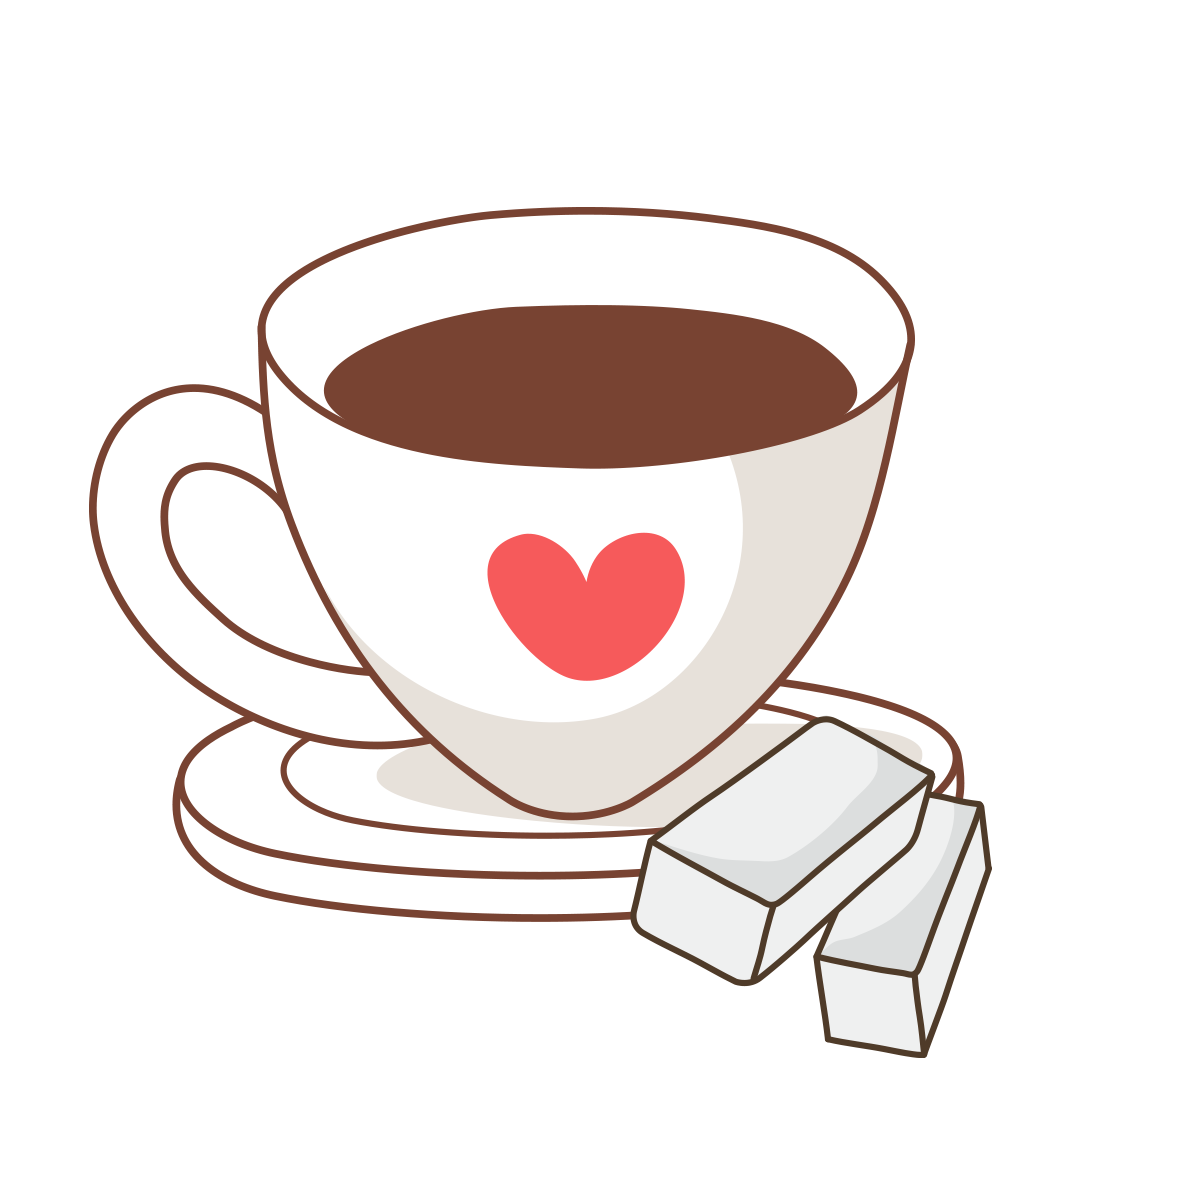 Coffee cup with heart clipart picture transparent Coffee cup Tea Cafe Clip art - a cup of coffee 1181*1181 transprent ... picture transparent